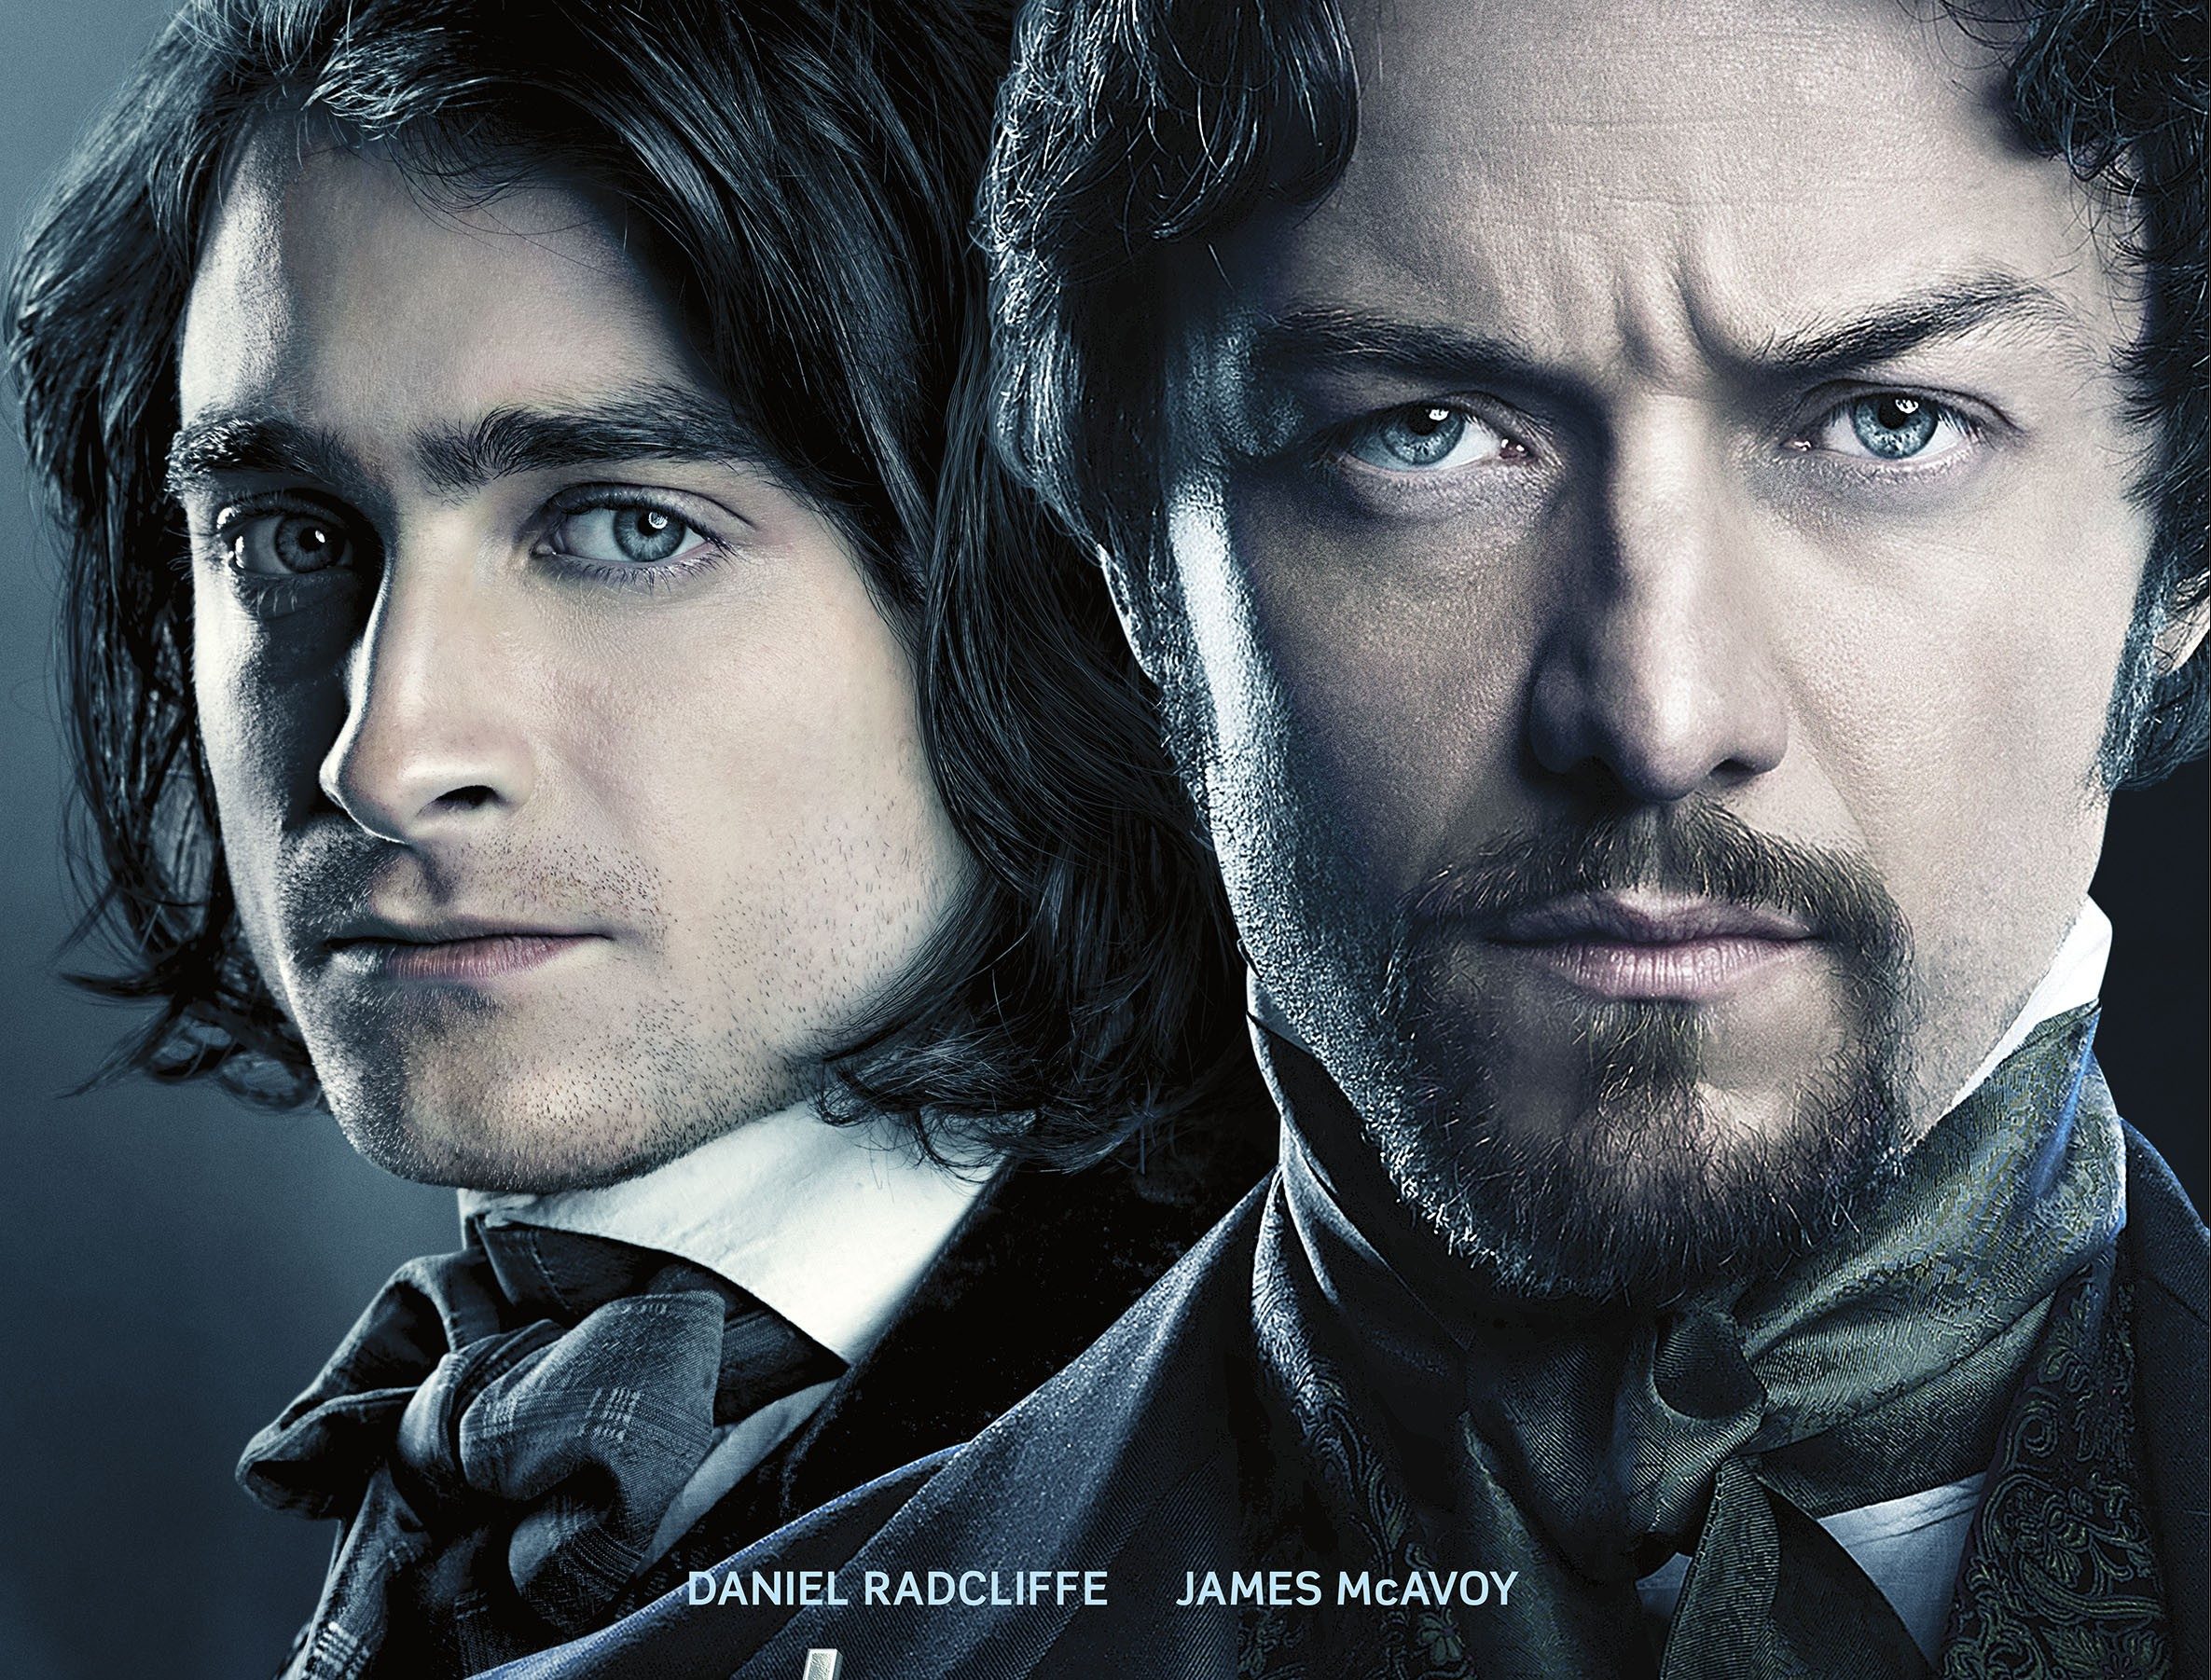 James McAvoy's new film Victor Frankenstein has put him in a sweary mood